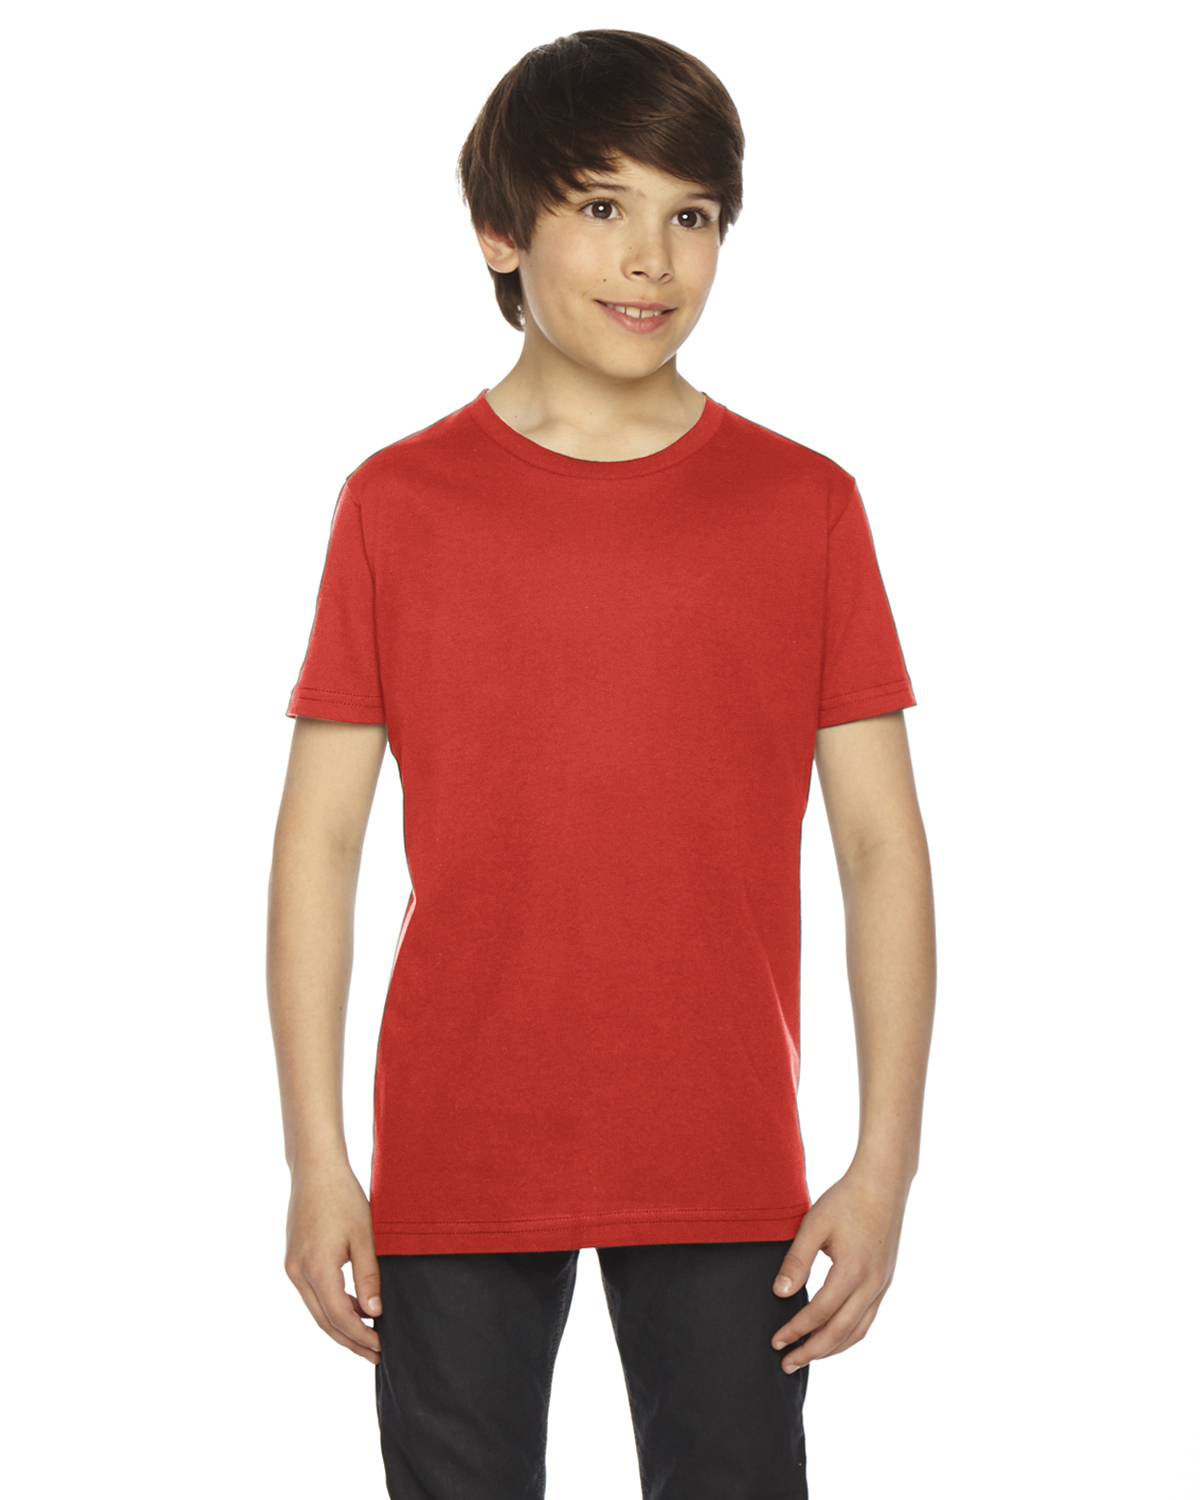 American Apparel Youth Fine Jersey Short-Sleeve T-Shirt